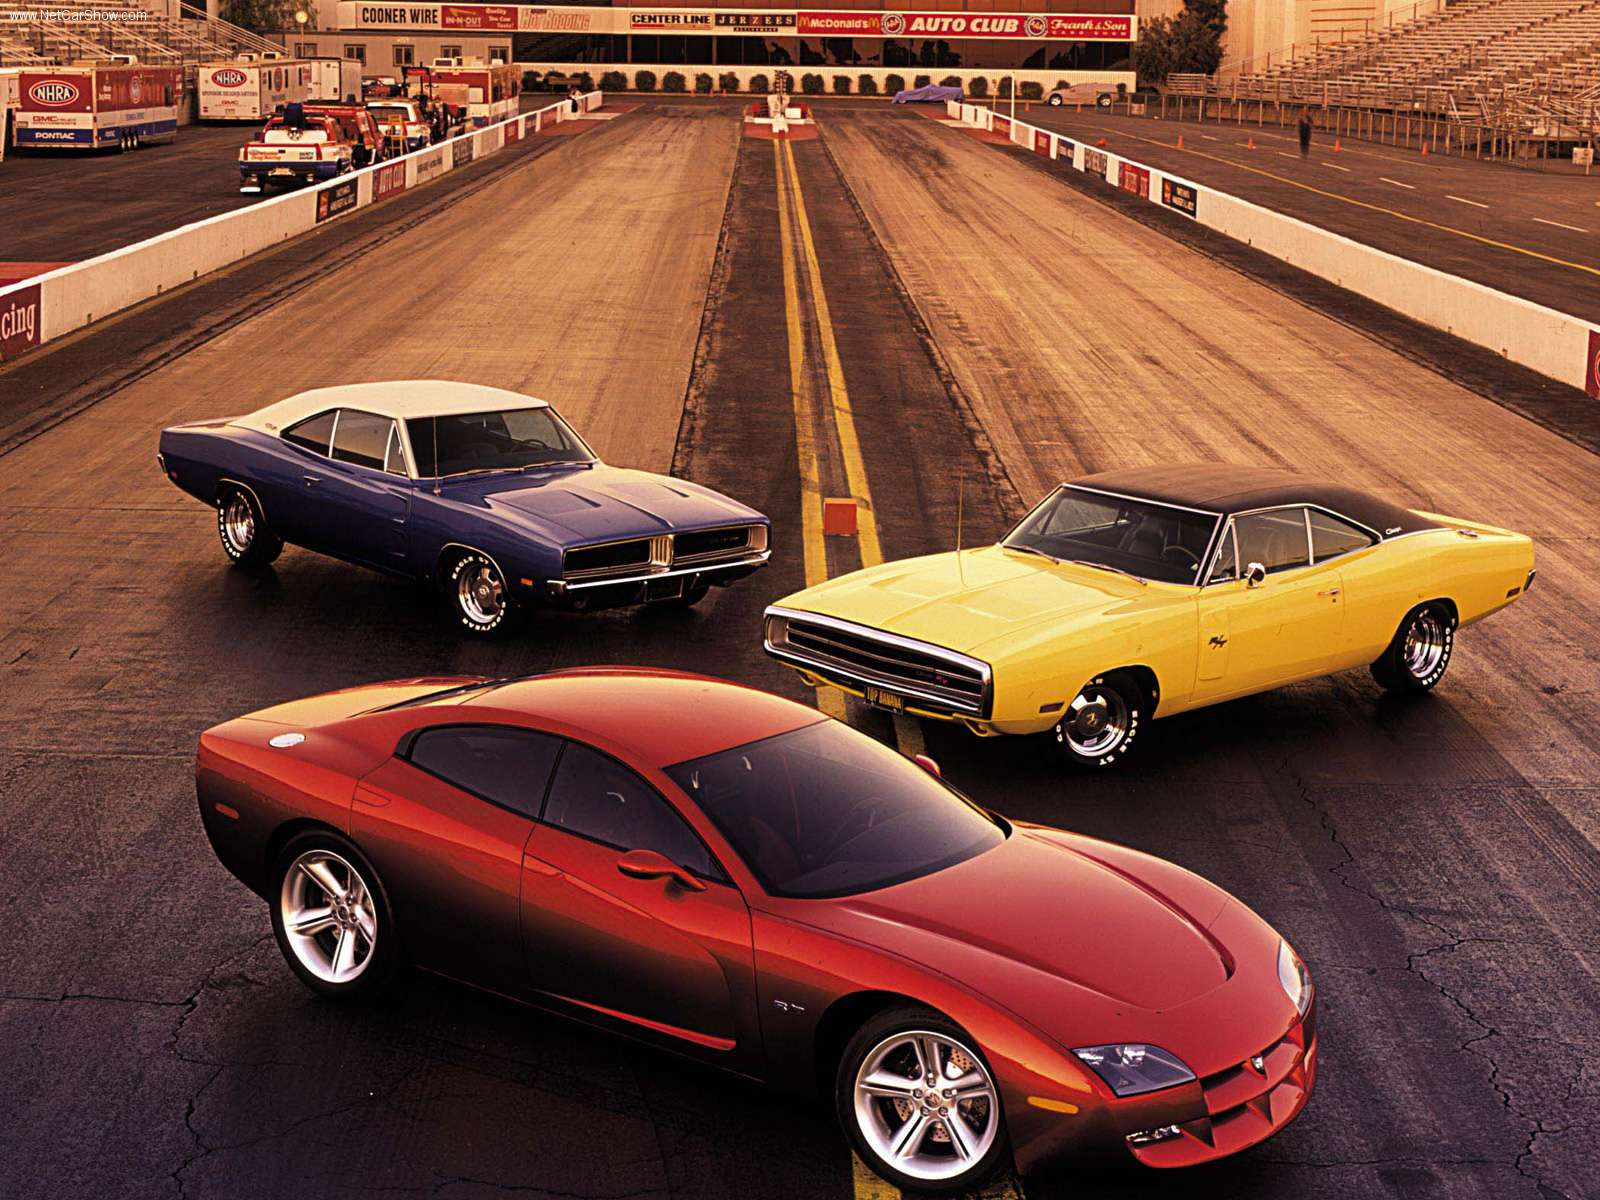 Dodge Charger R T Concept Amcarguide Com American Muscle